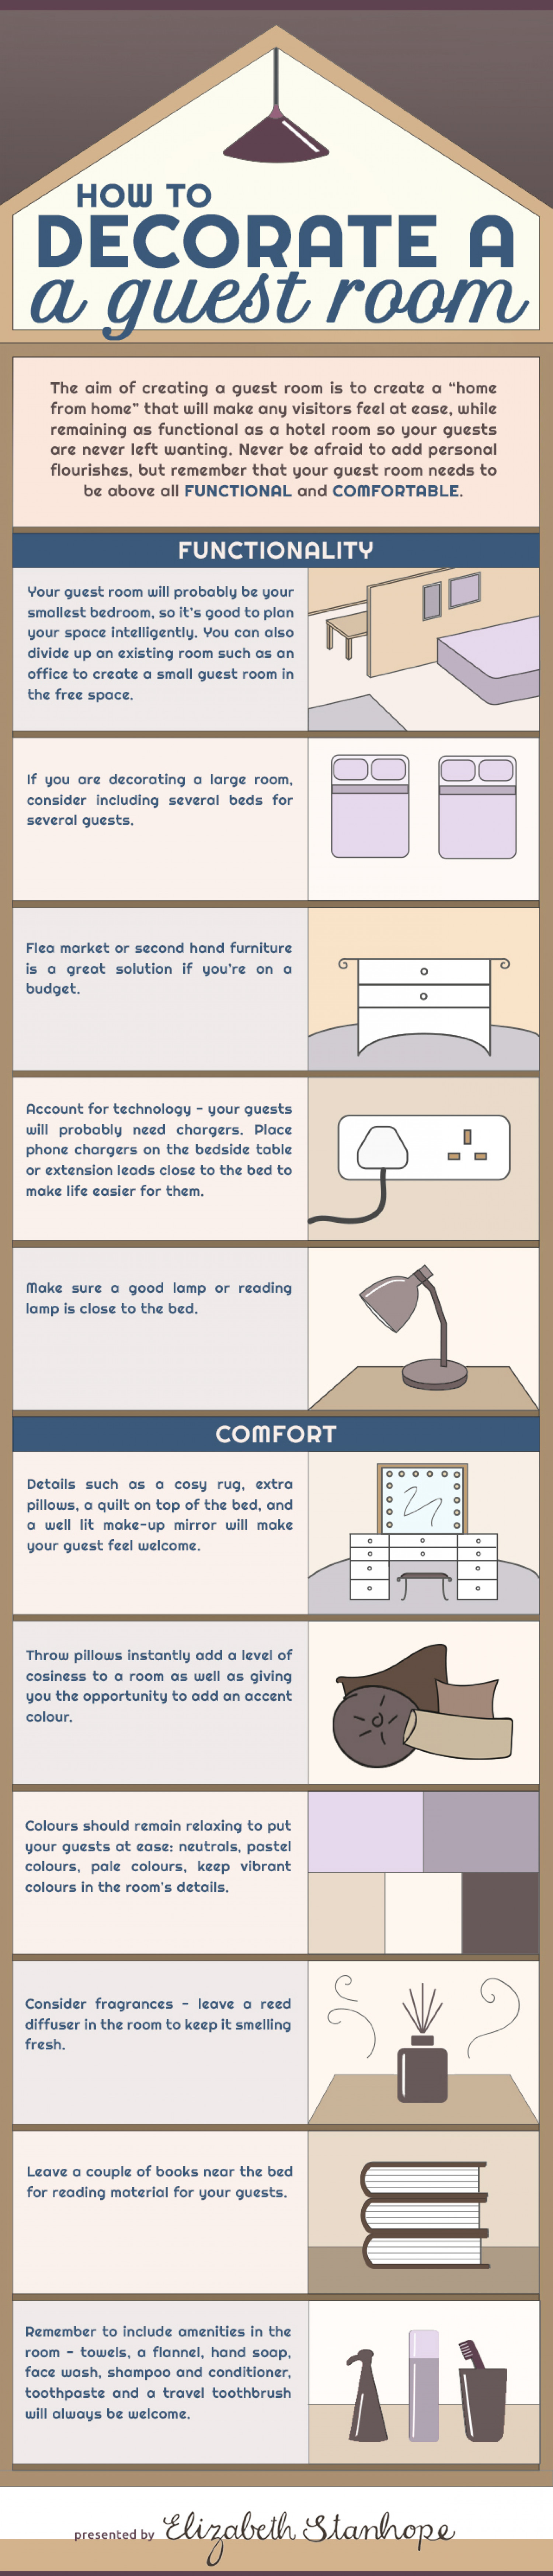 How to Decorate a Guest Room Infographic